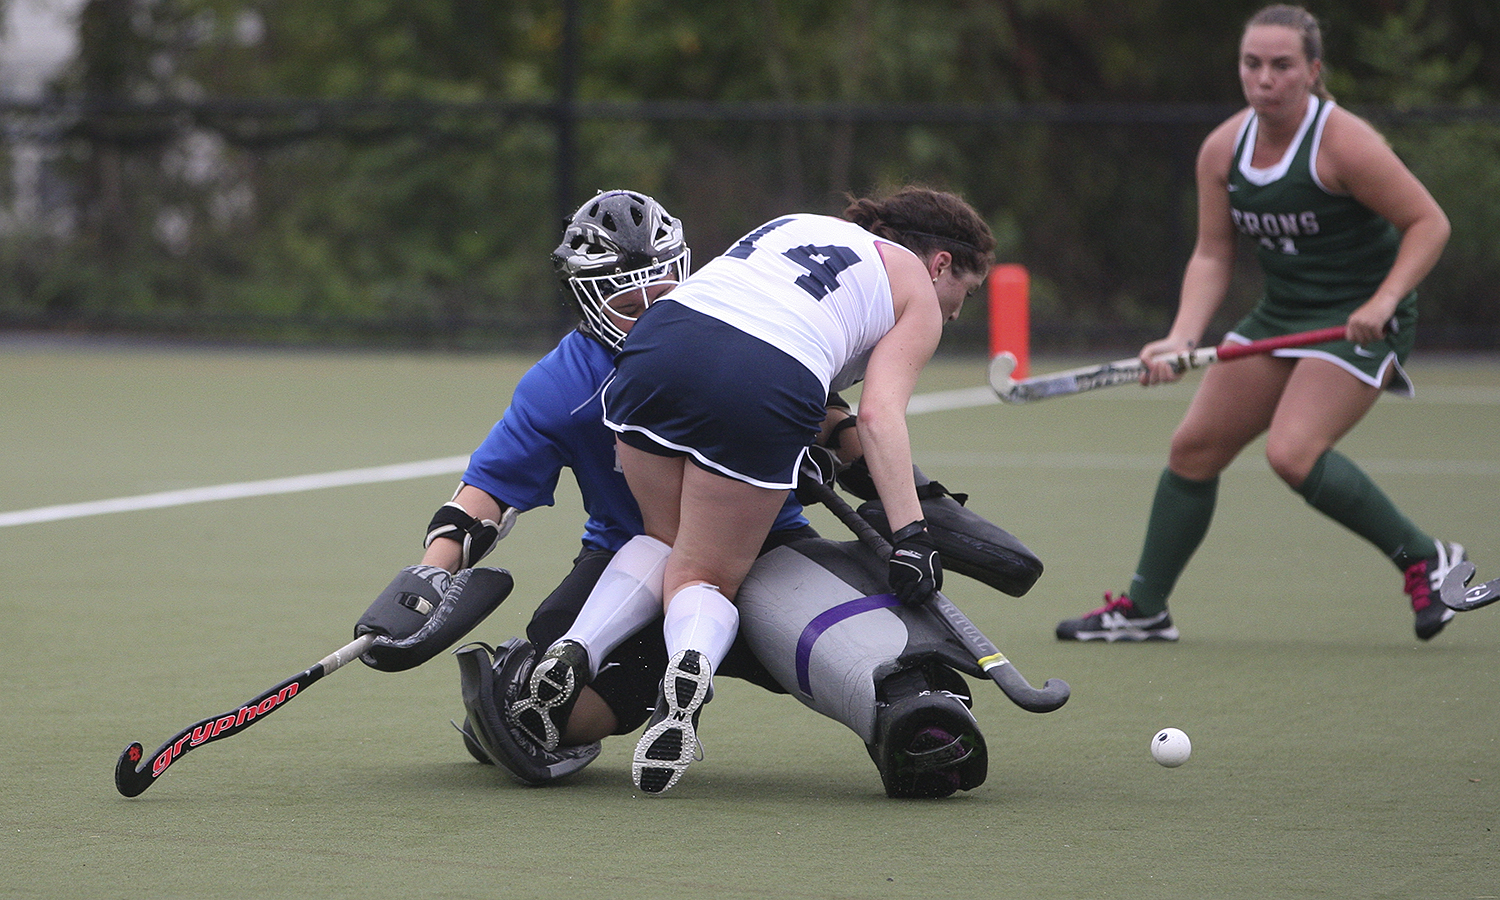 Goalkeeper Biz Chirco '17 takes on the Ithaca offense during Saturday morning's game on McCooey Field. The Heronâs came away with a 6-2 win.